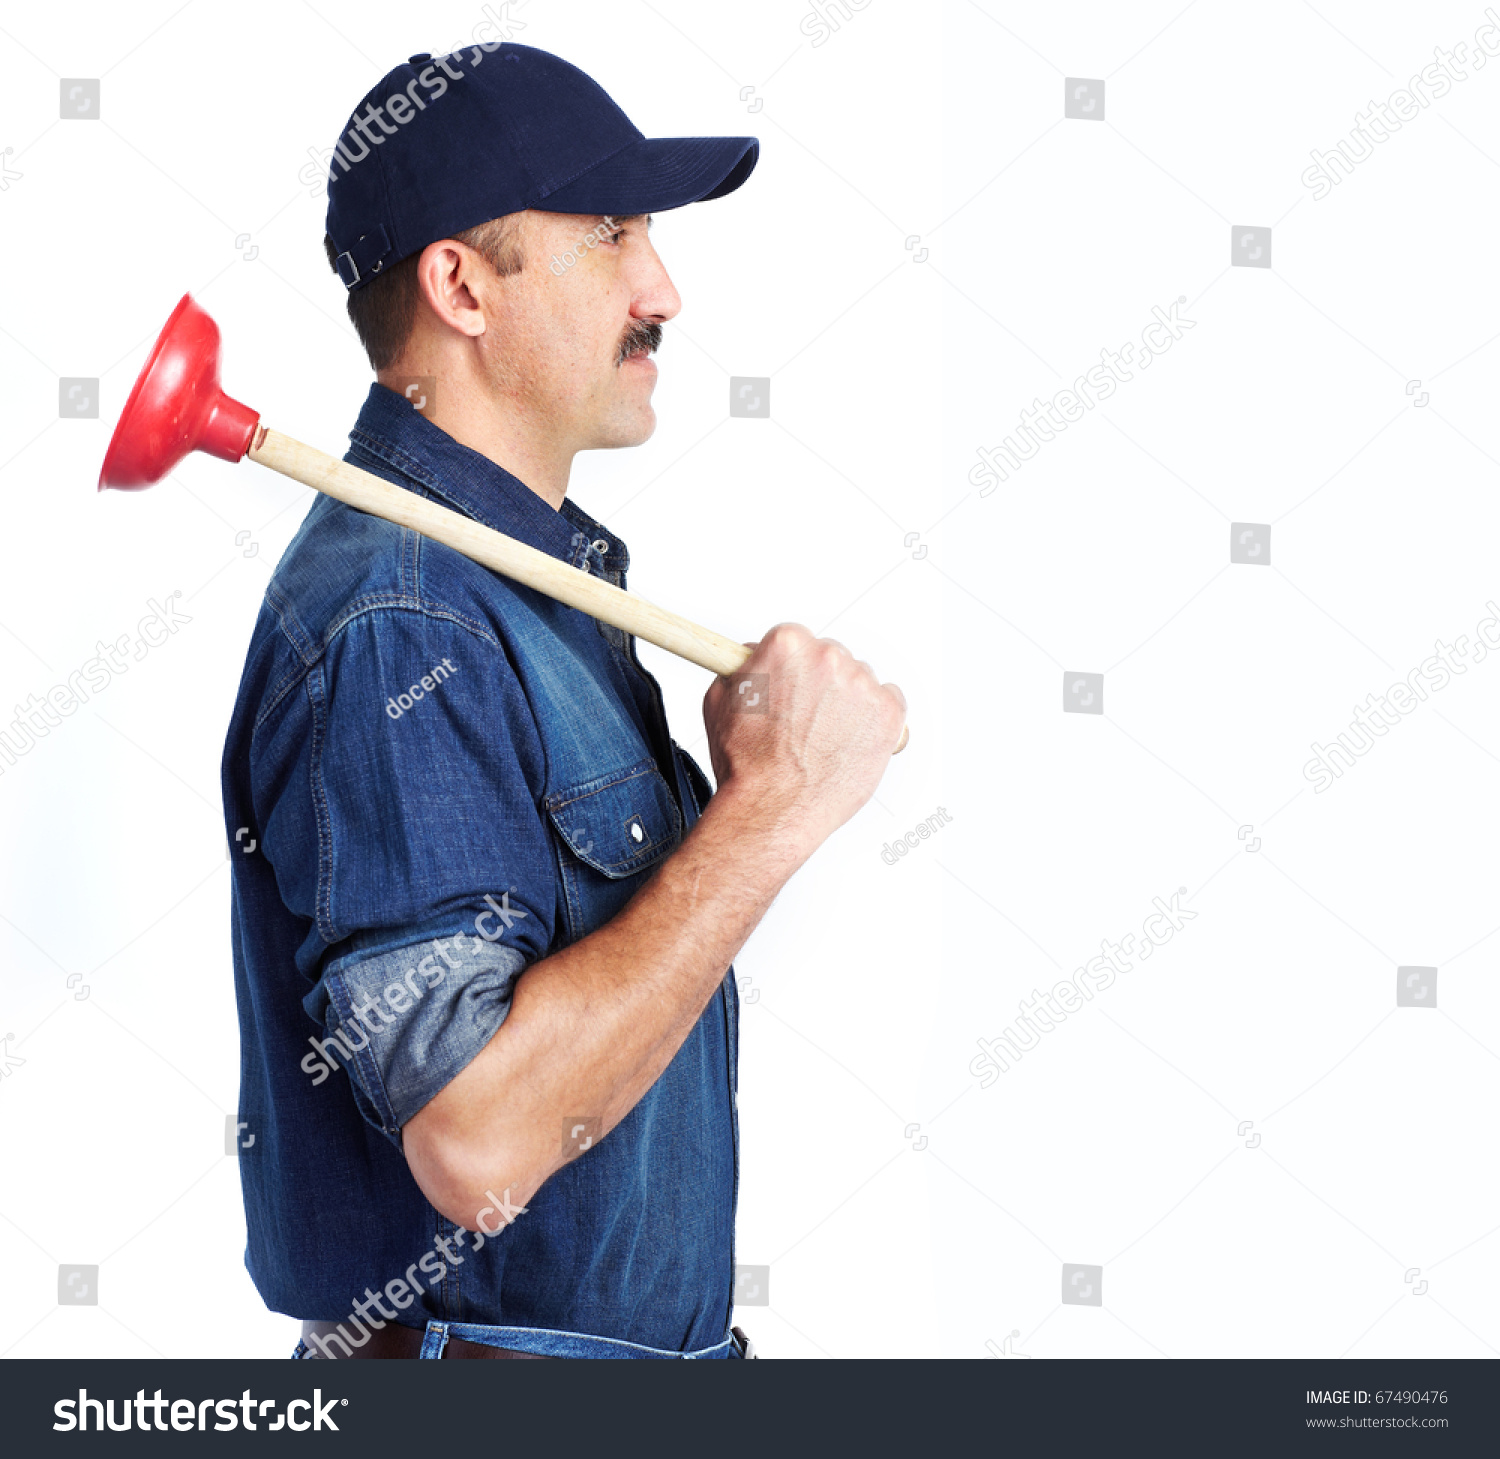 plumber with a toilet plunger isolated over white background stock photo 67490476 shutterstock. Black Bedroom Furniture Sets. Home Design Ideas